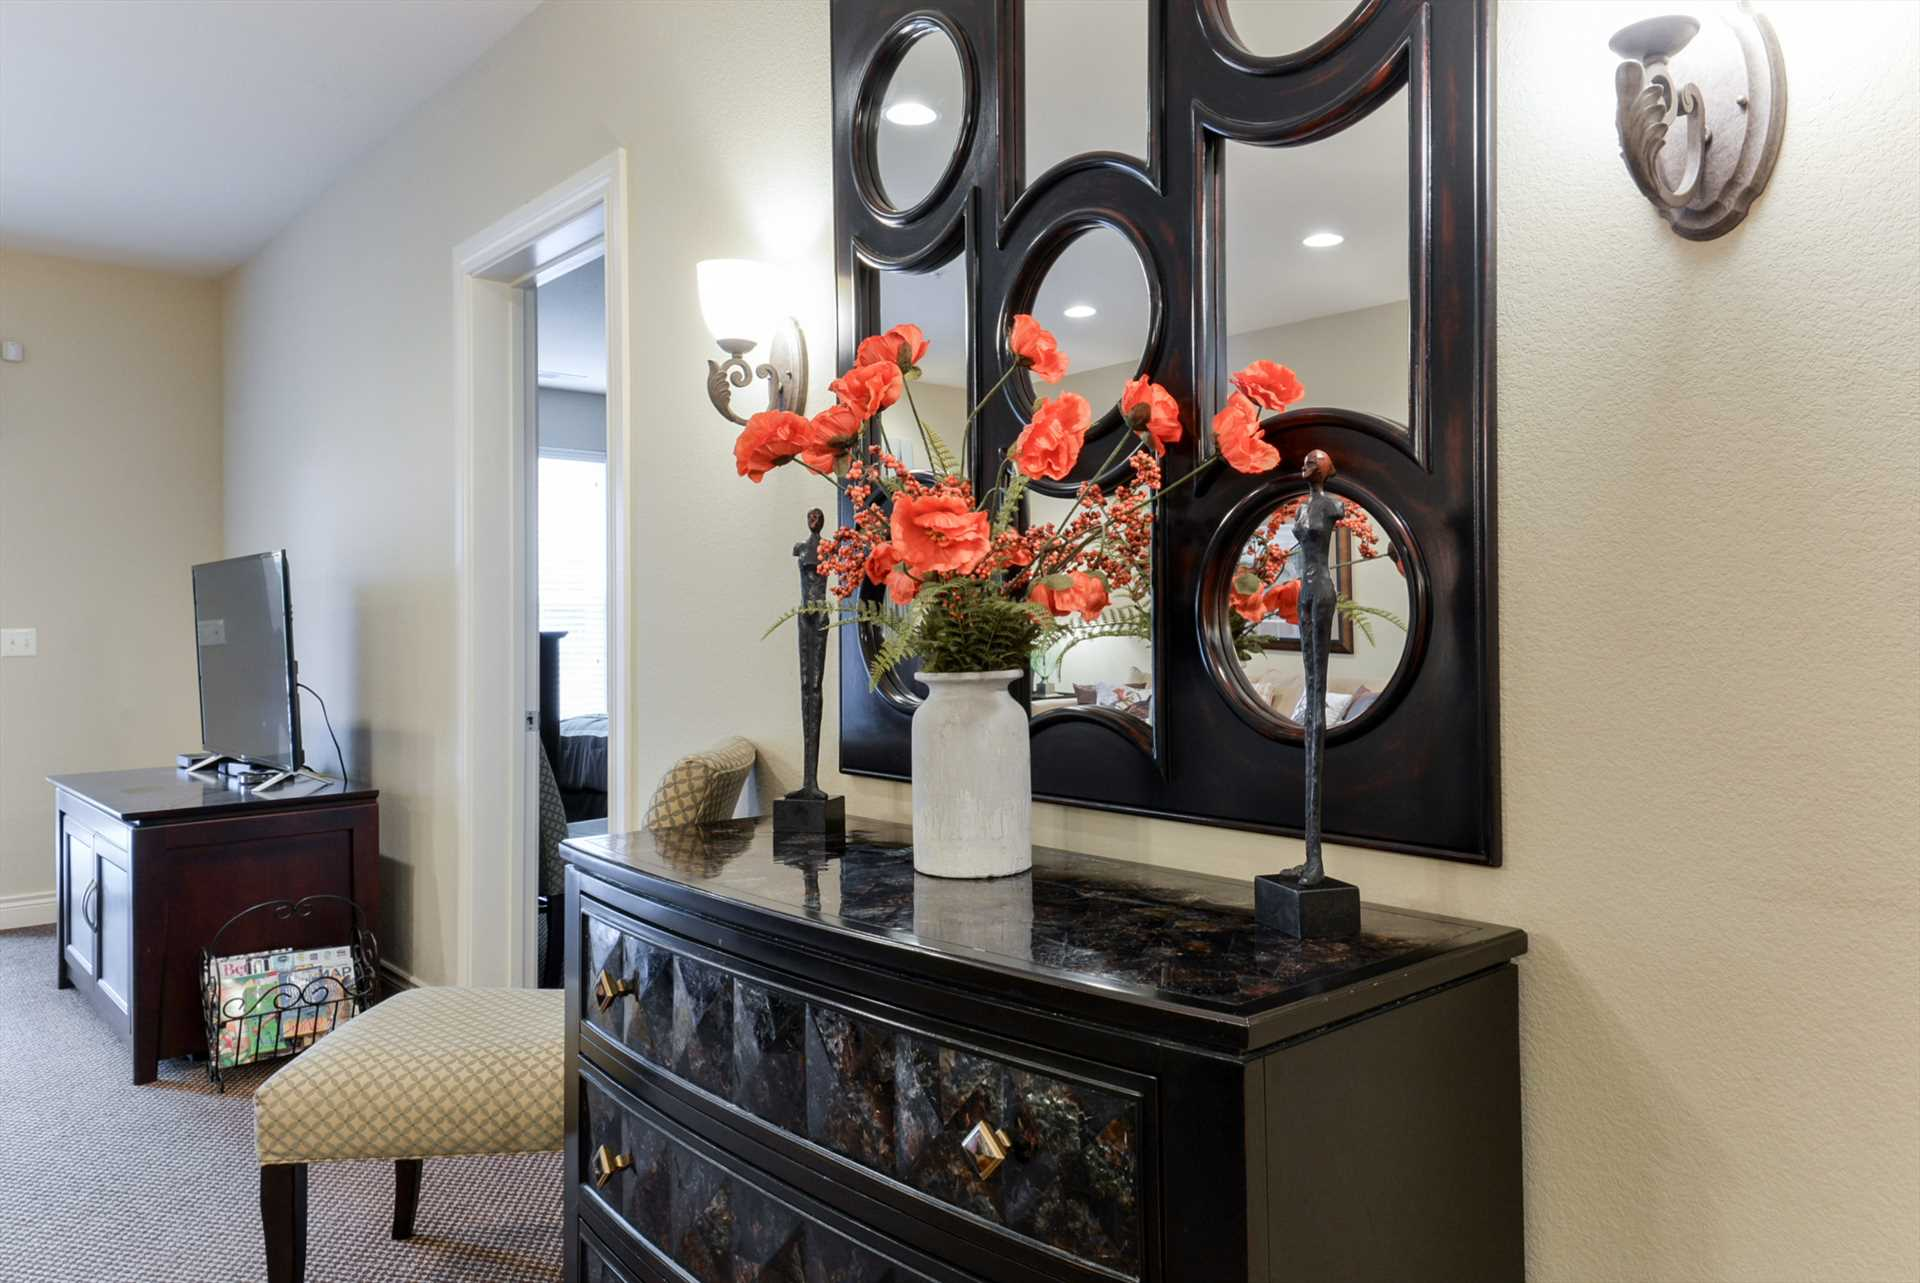 The charming decor is a highlight of this condo.